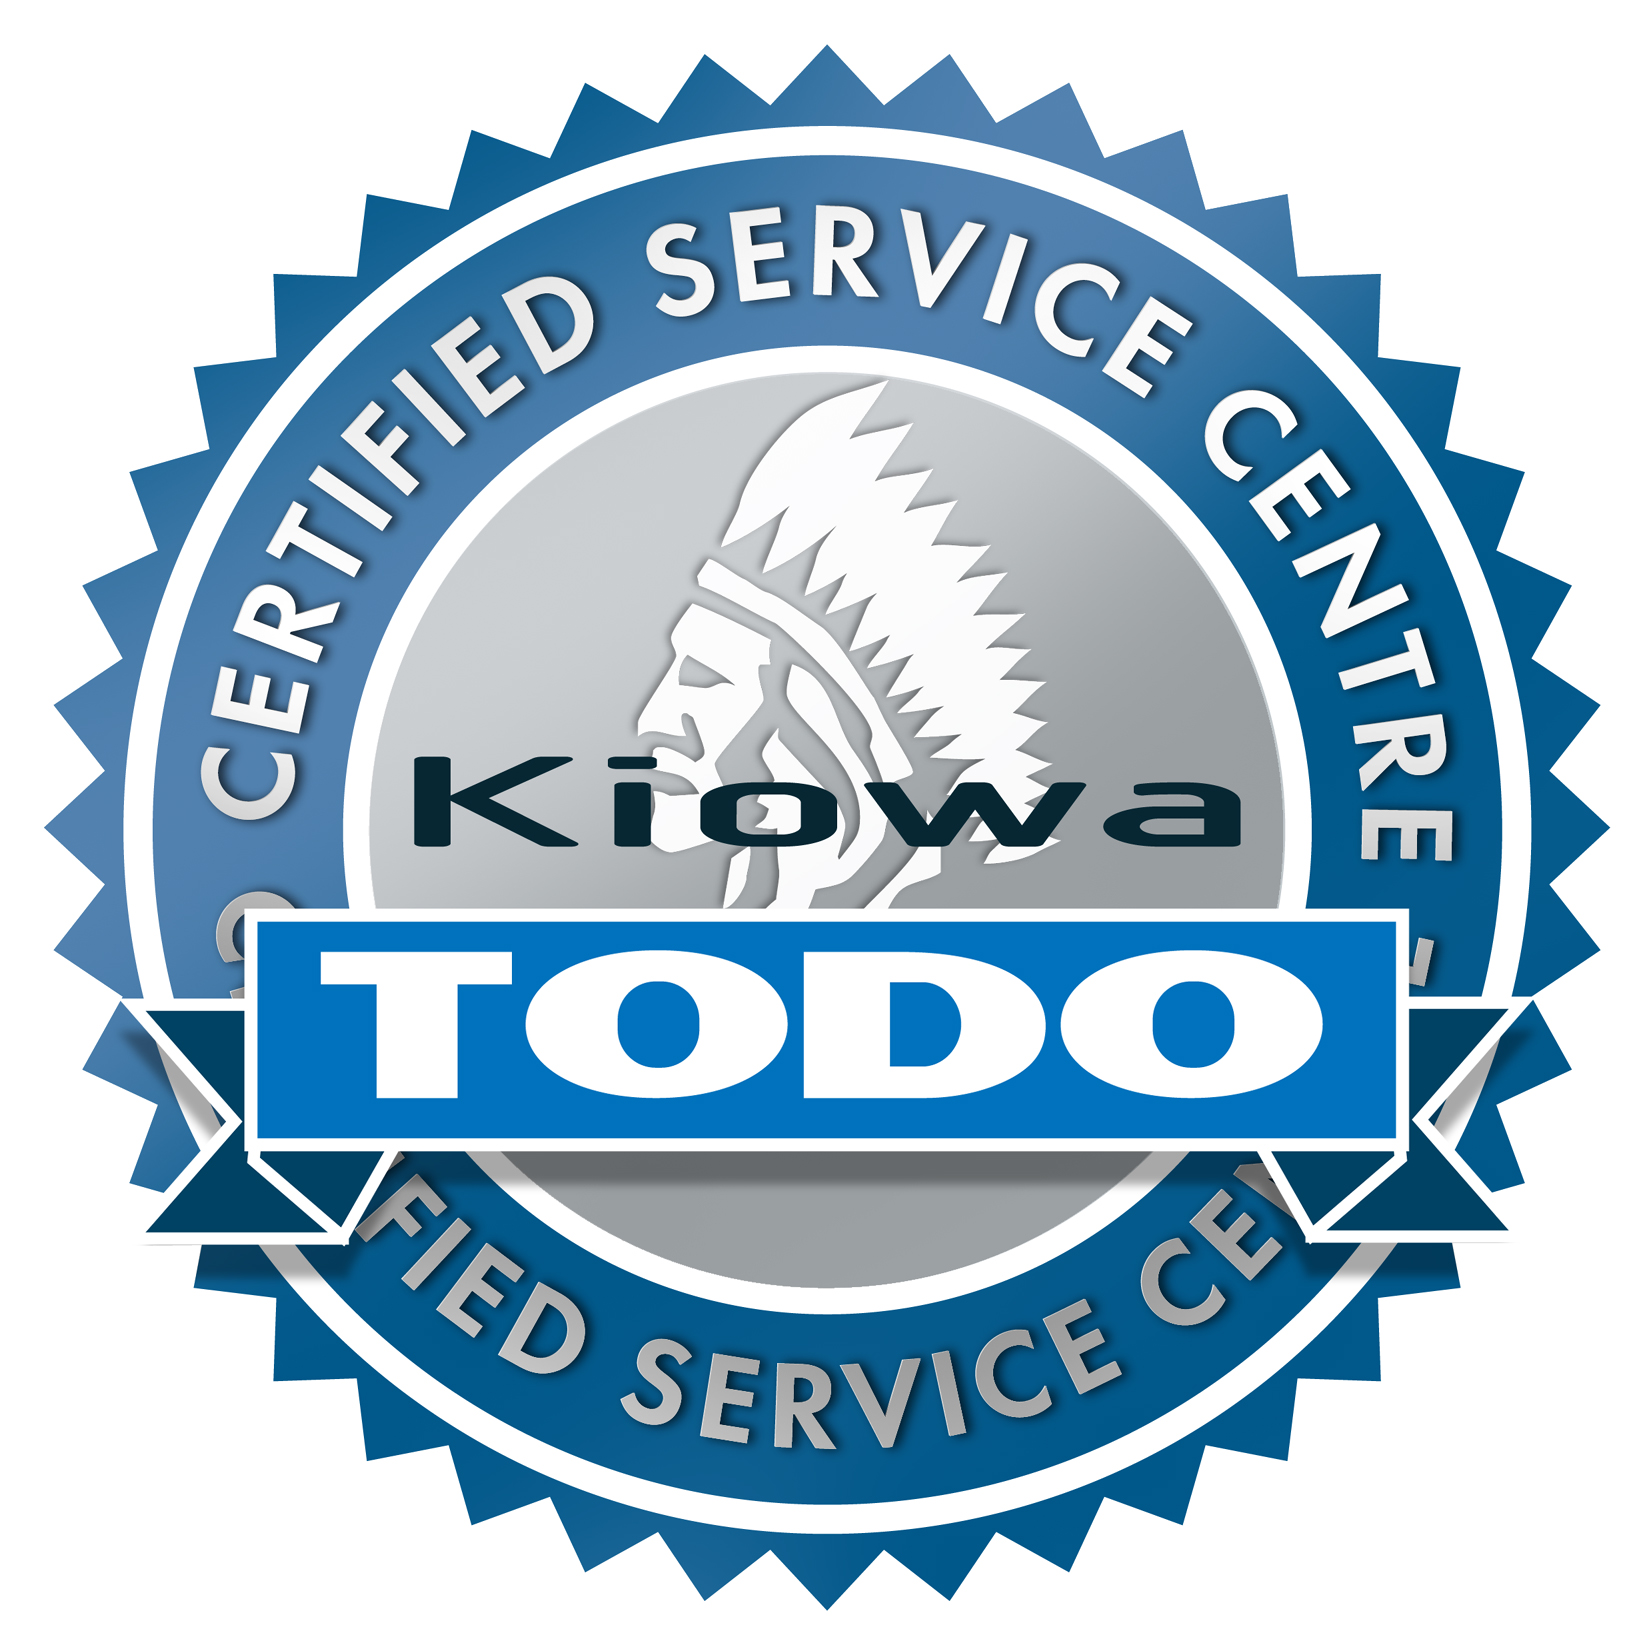 Kiowa Awarded Recognition as an 'Official TODO Certified Service Centre'